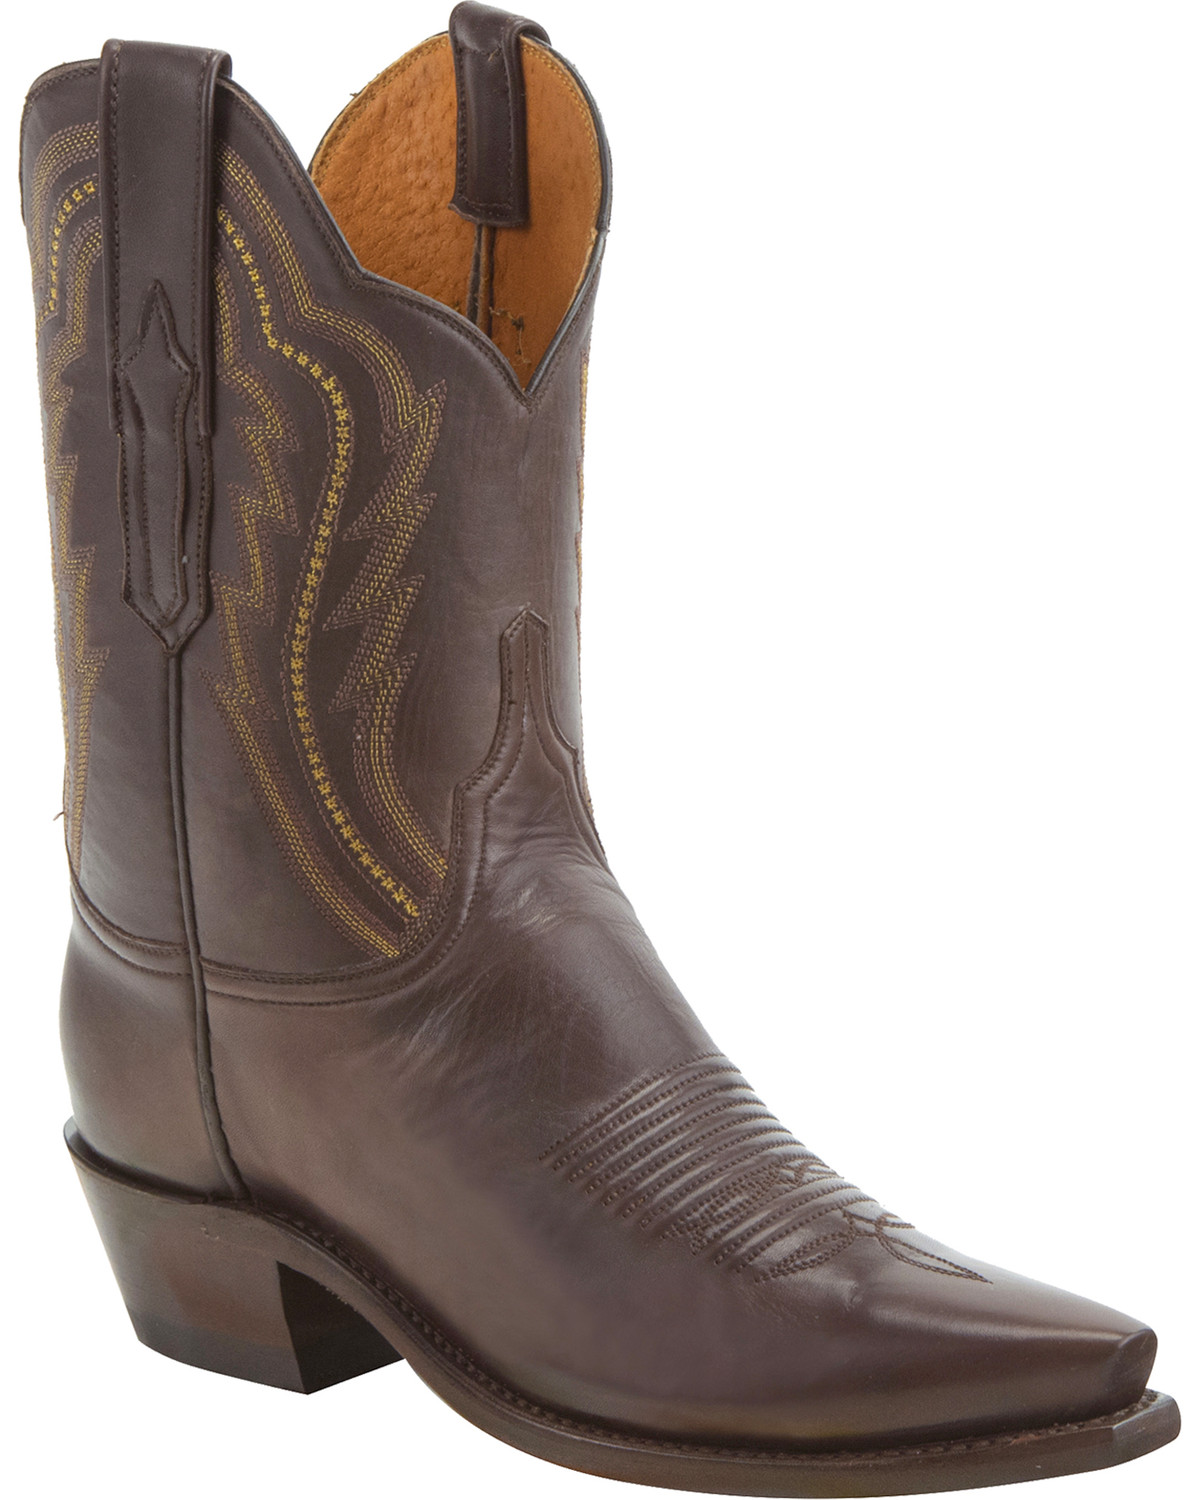 Innovative LADIES LUCCHESE FASHION COWGIRL WESTERN BOOT M5022.S53F | EBay